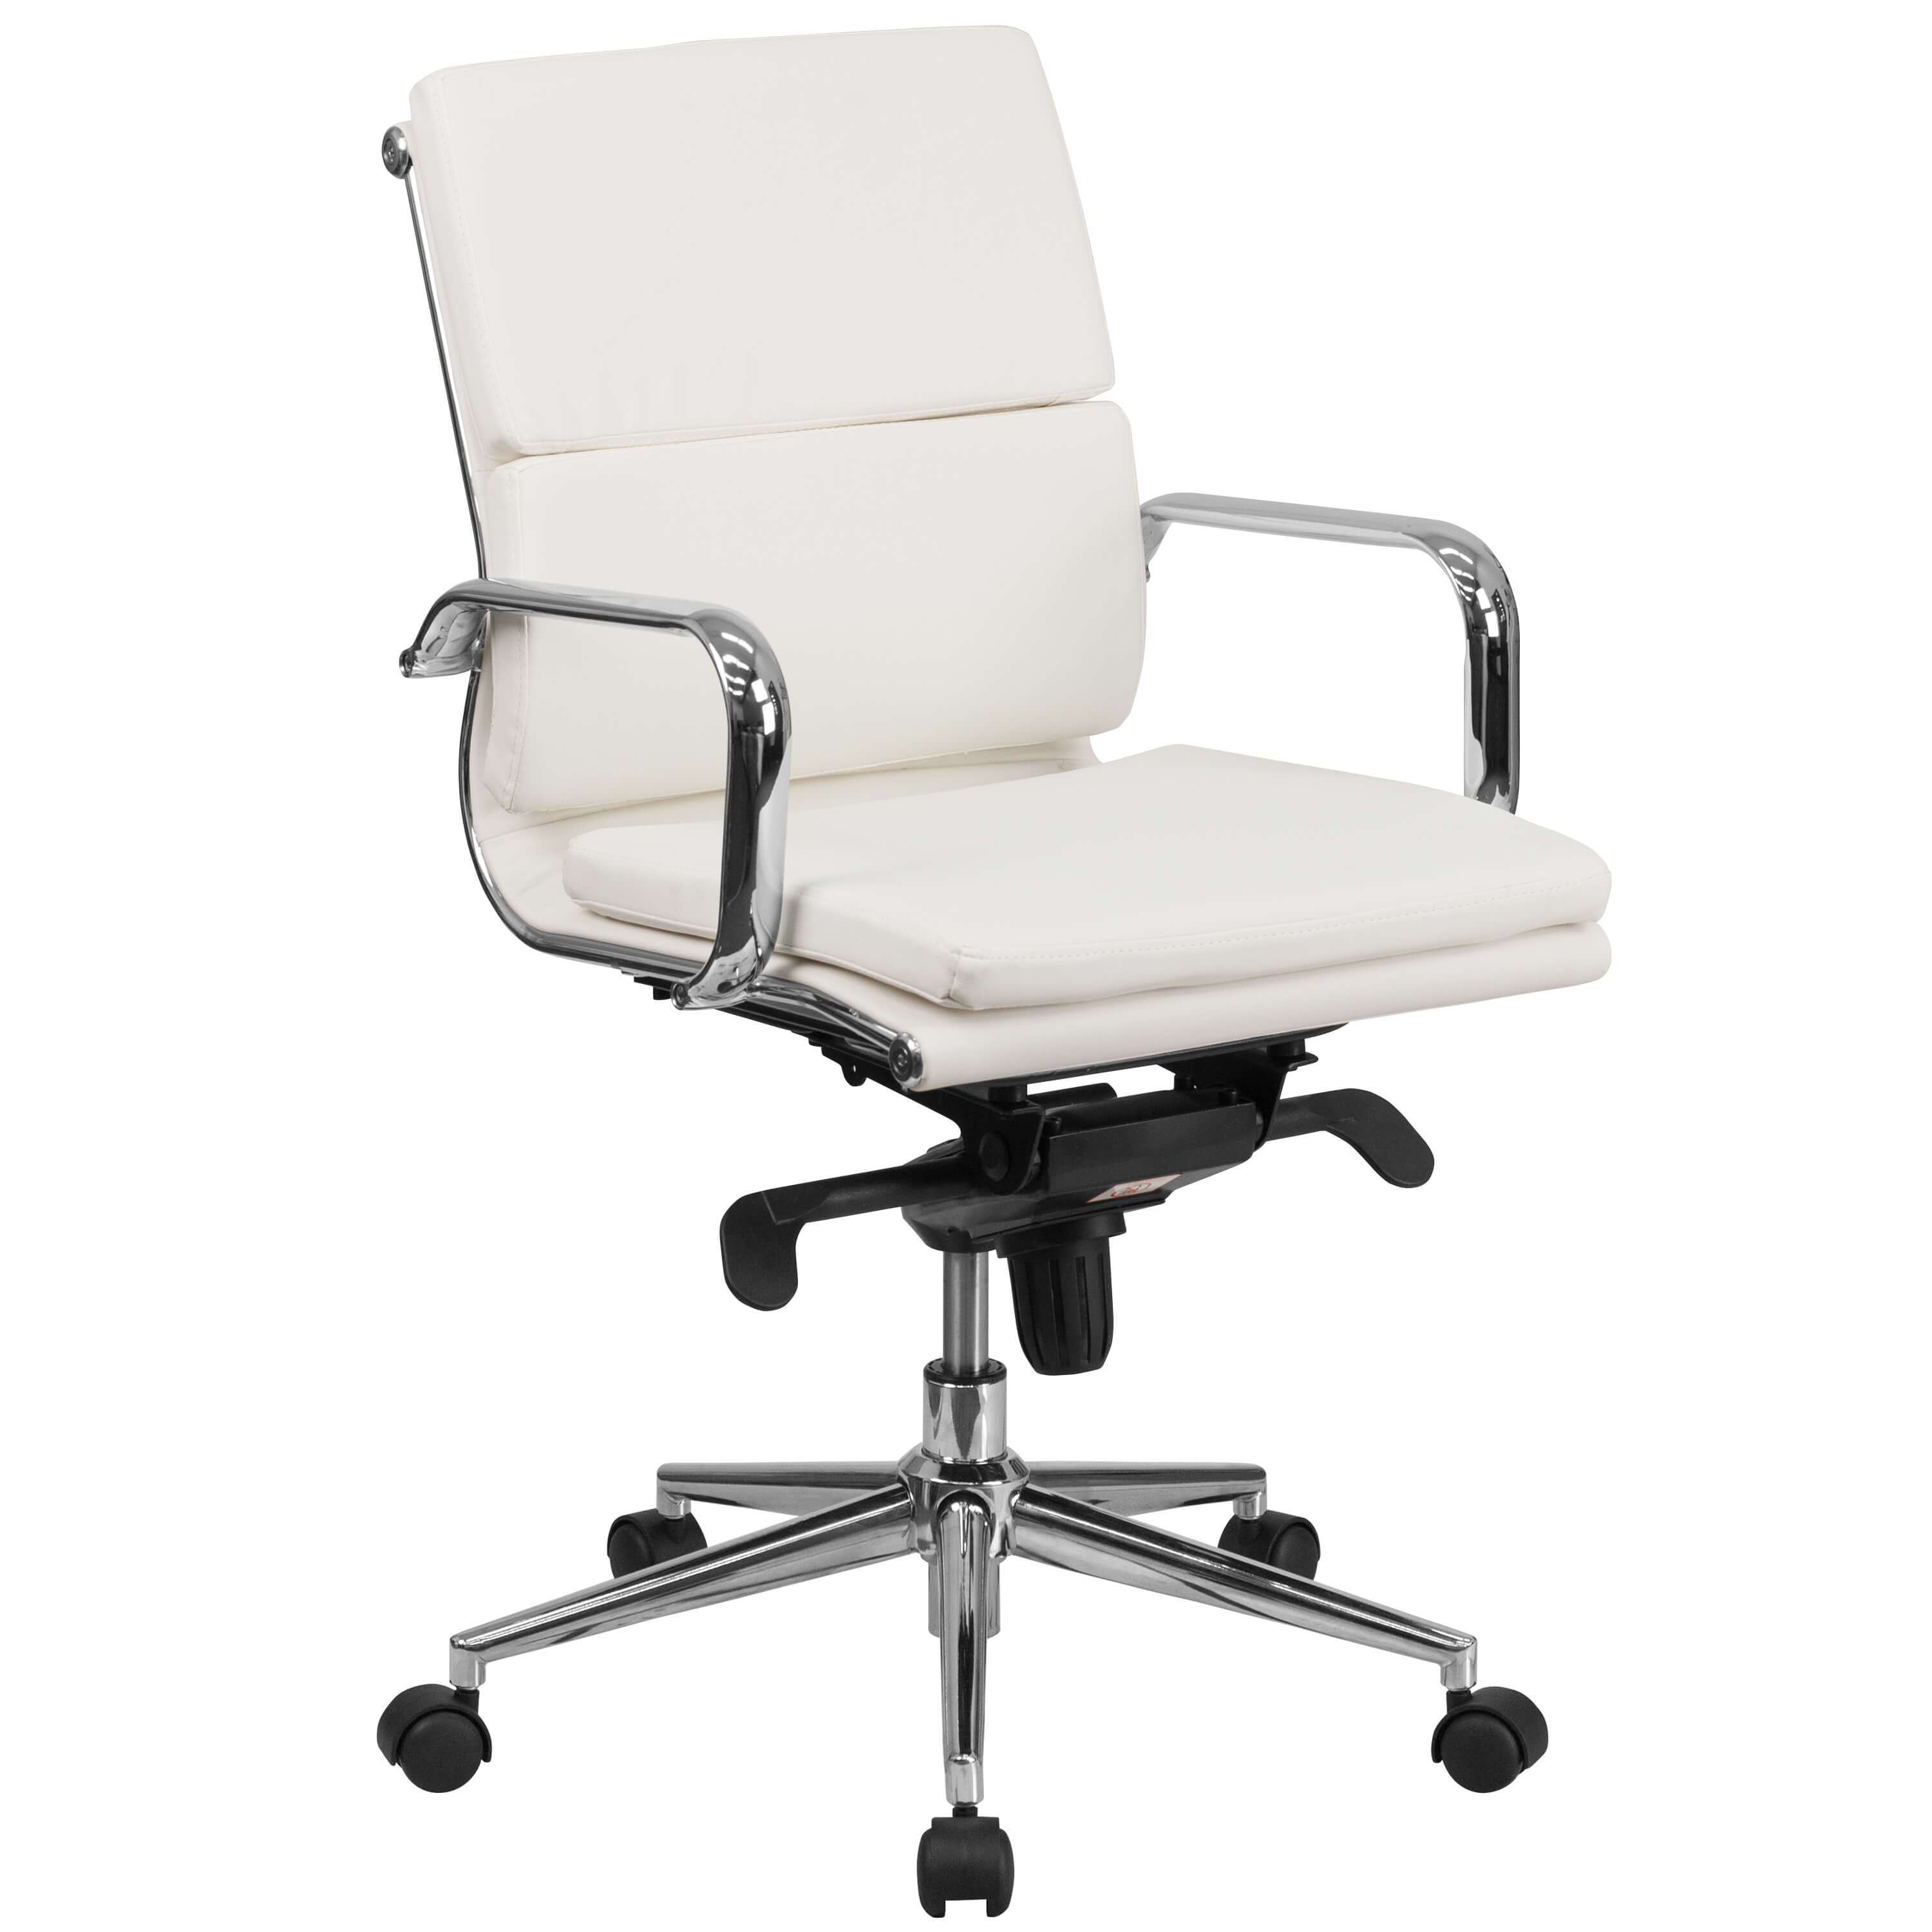 Queen Star Slim and Tall Leather Desk Chair